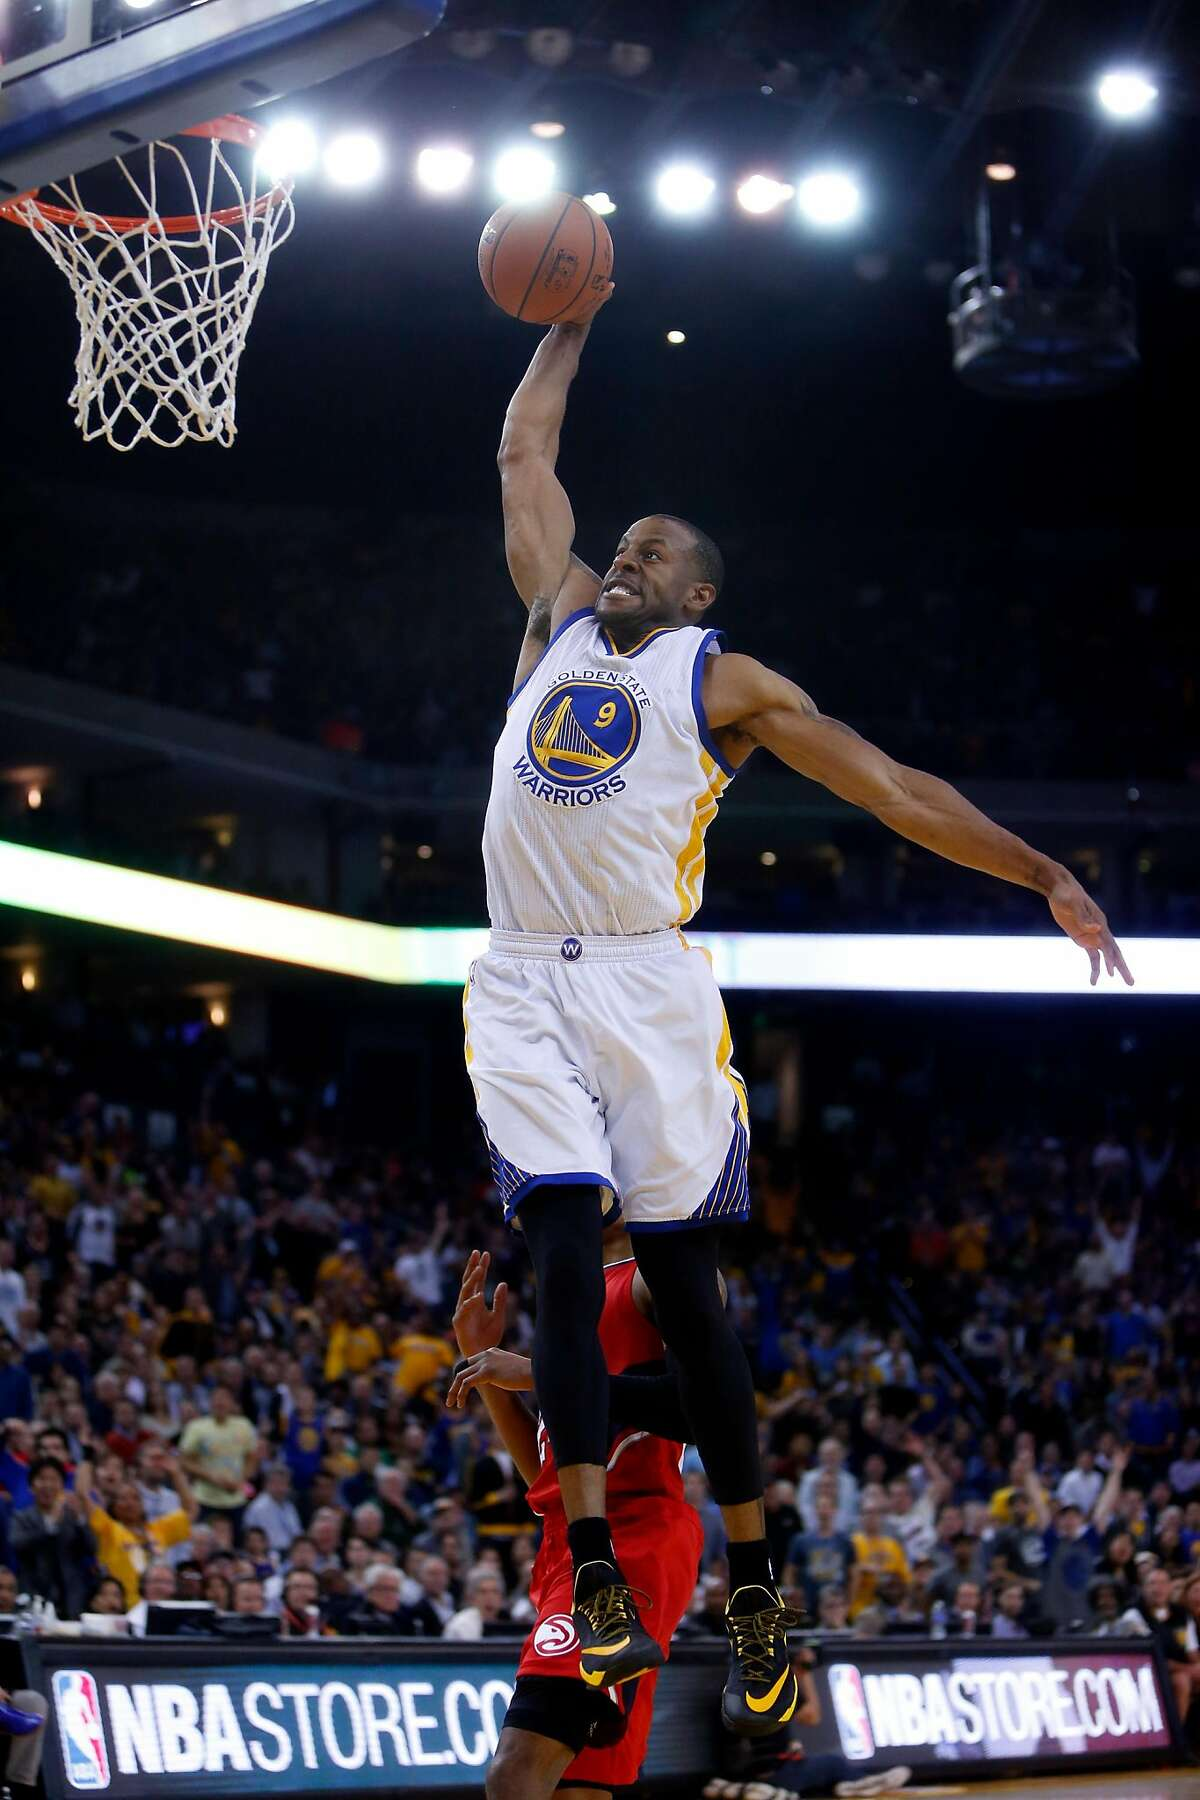 Golden State Warriors' Andre Iguodala dunks against Atlanta Hawks in 4th quarter during NBA game at Oracle Arena in Oakland, Calif., on Wednesday, March 18, 2015.